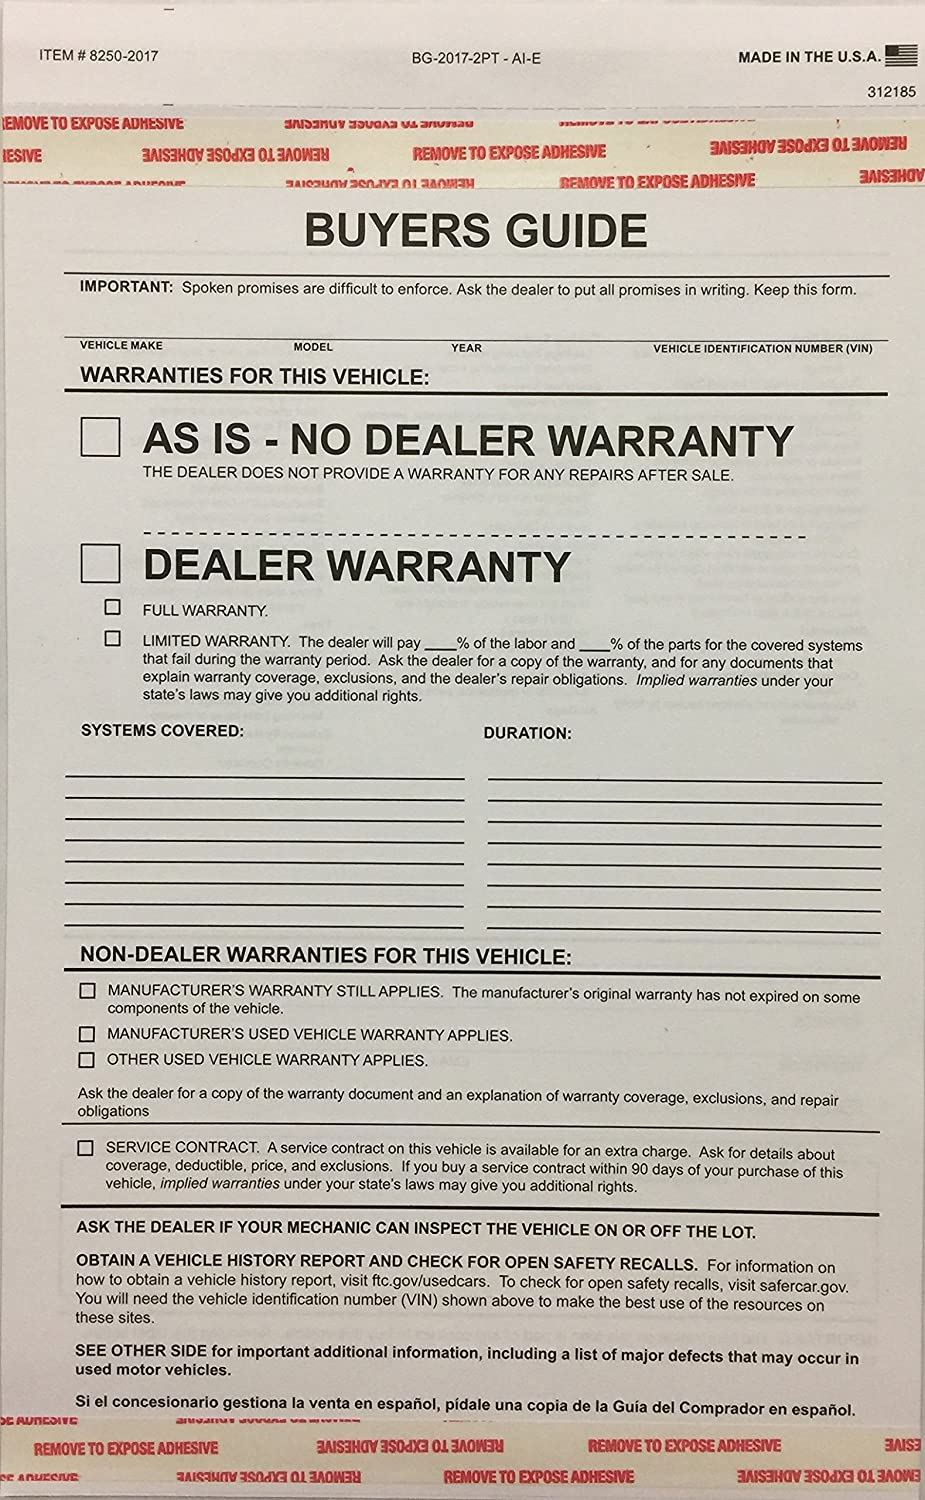 2-part Buyers Guide Form - Adhesive Tape - English - As Is - Warranty (100 Per Pack)